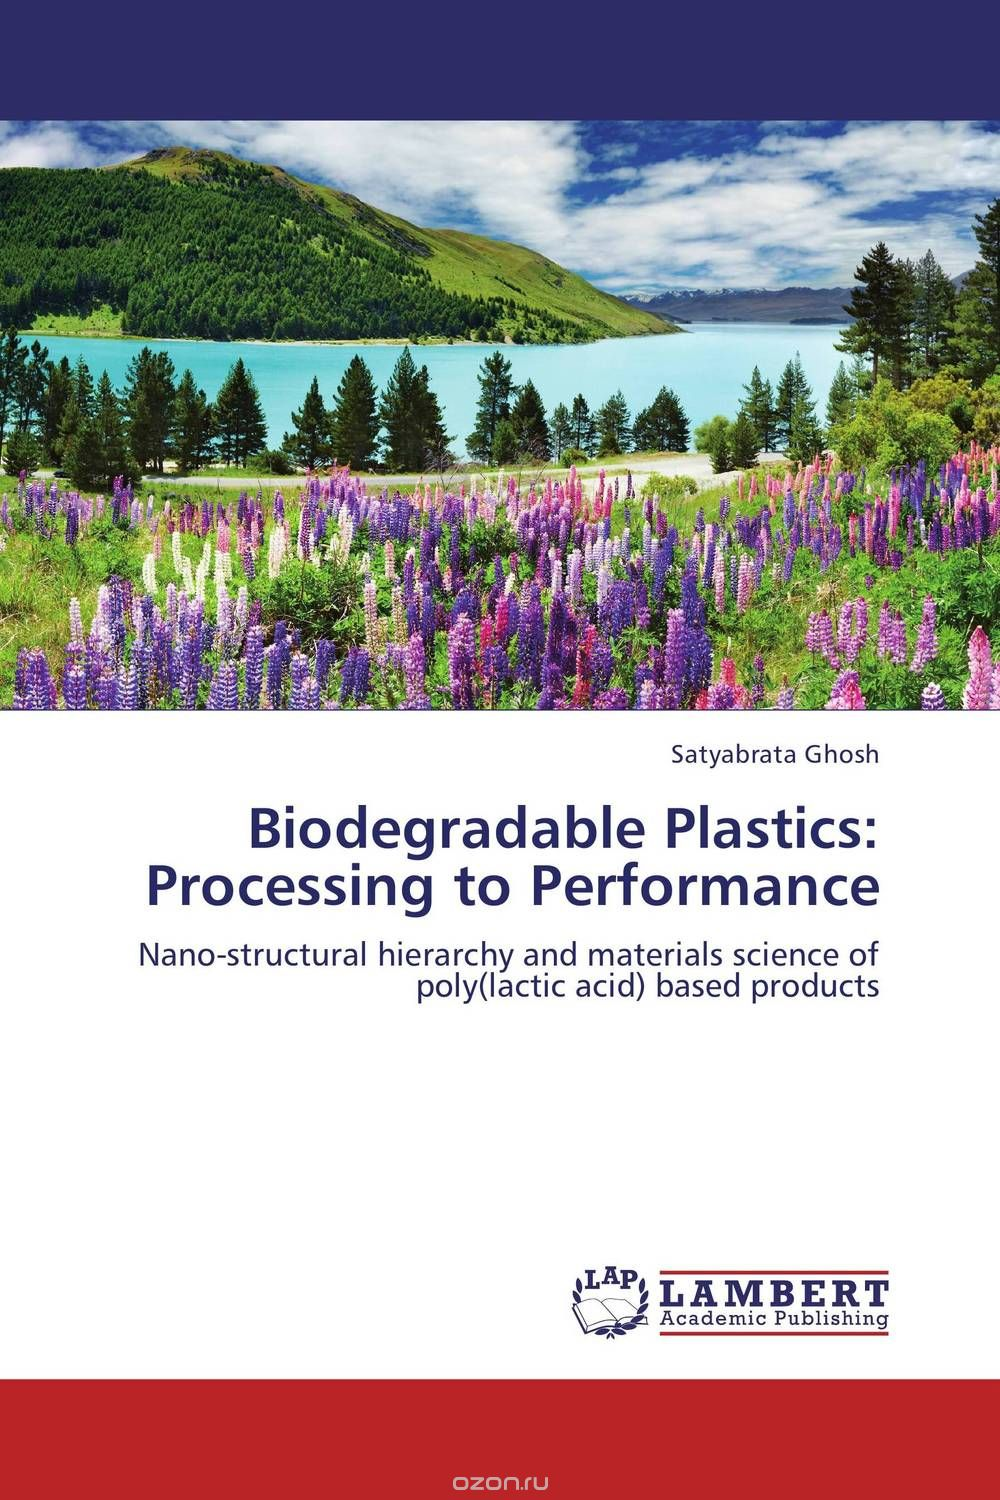 Biodegradable Plastics: Processing to Performance